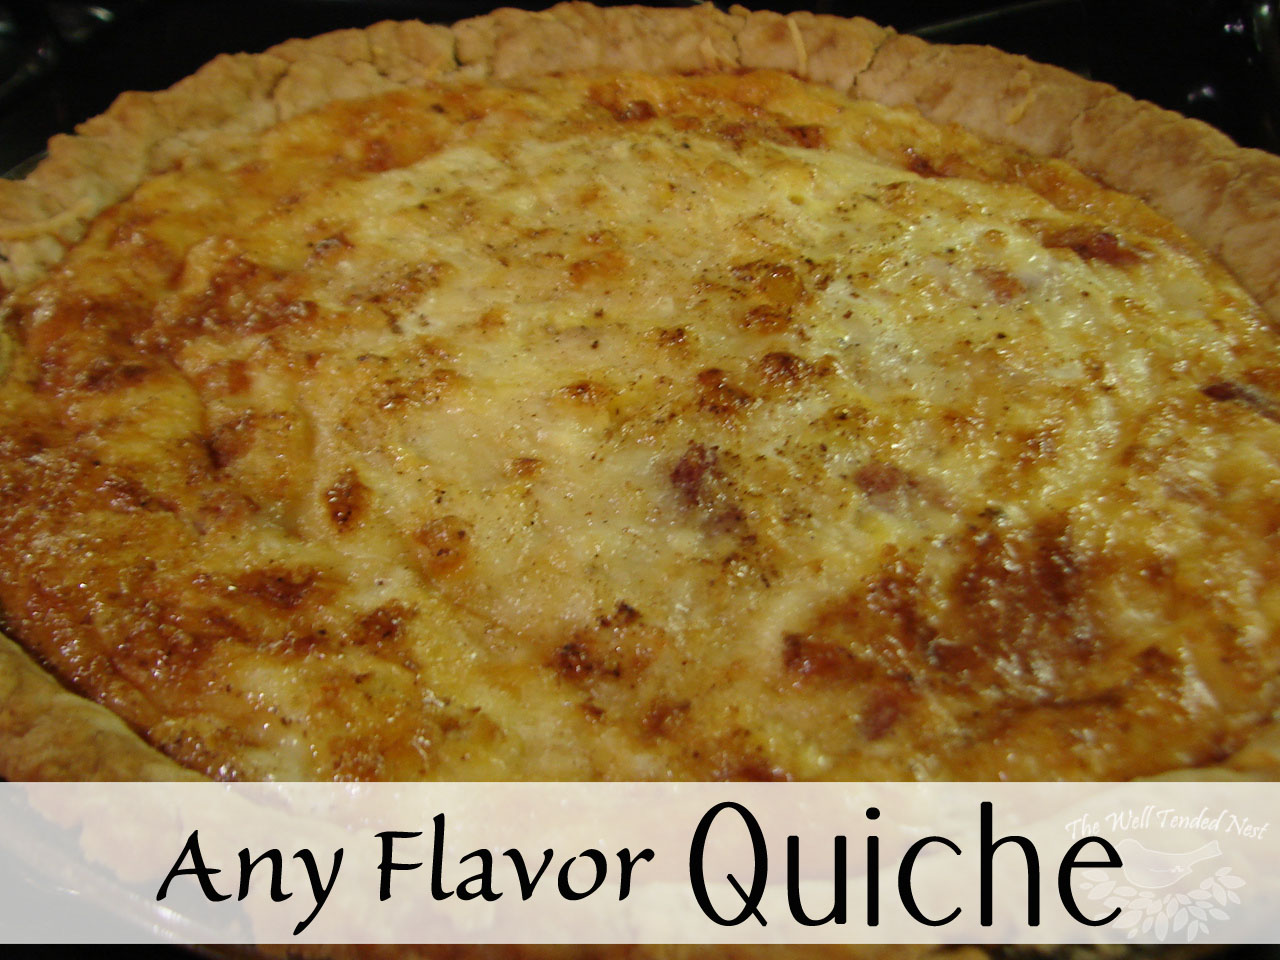 any flavor quiche recipe